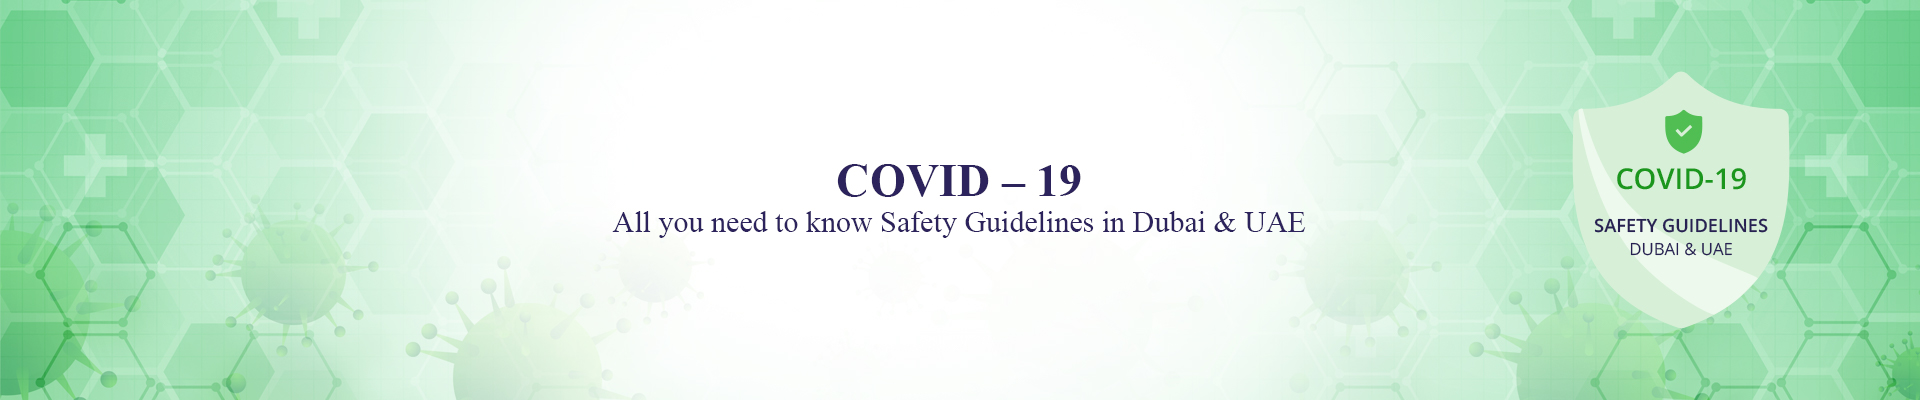 abc-tours-duabi-covid-19-uae-dubai-guidelines